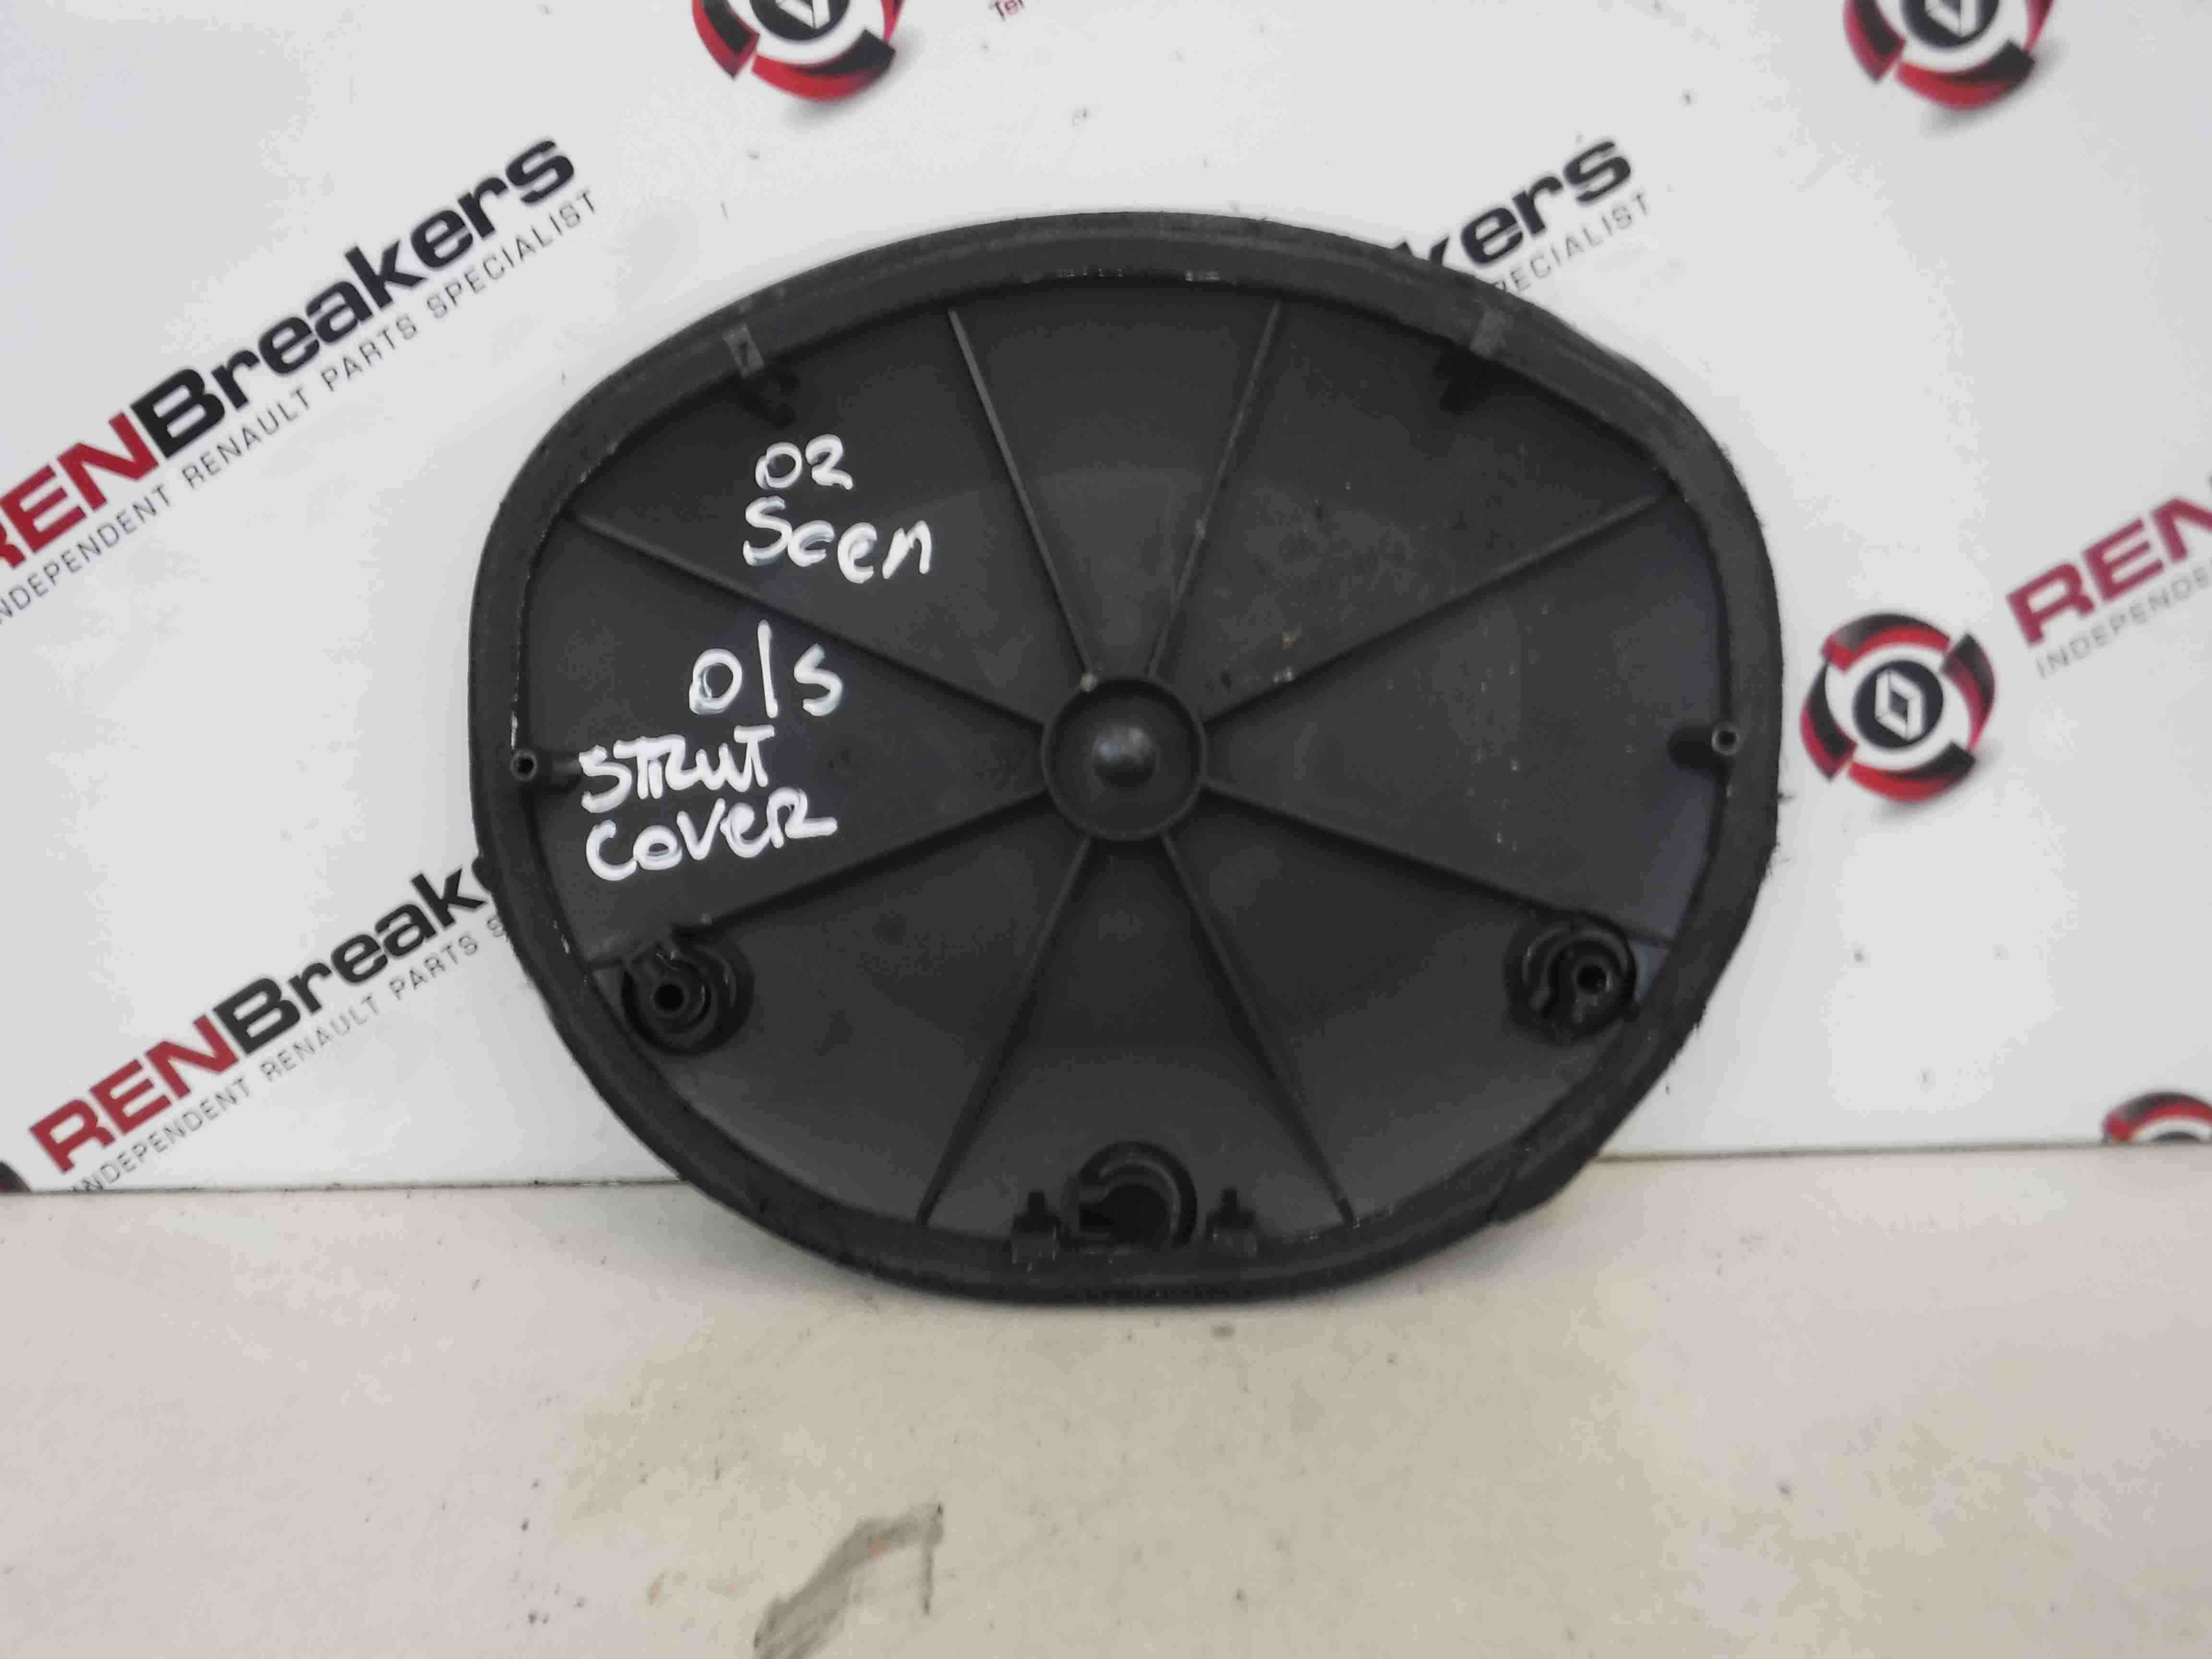 Renault Megane Scenic 1999-2003 Drivers OSF Front Suspension Mount Cover